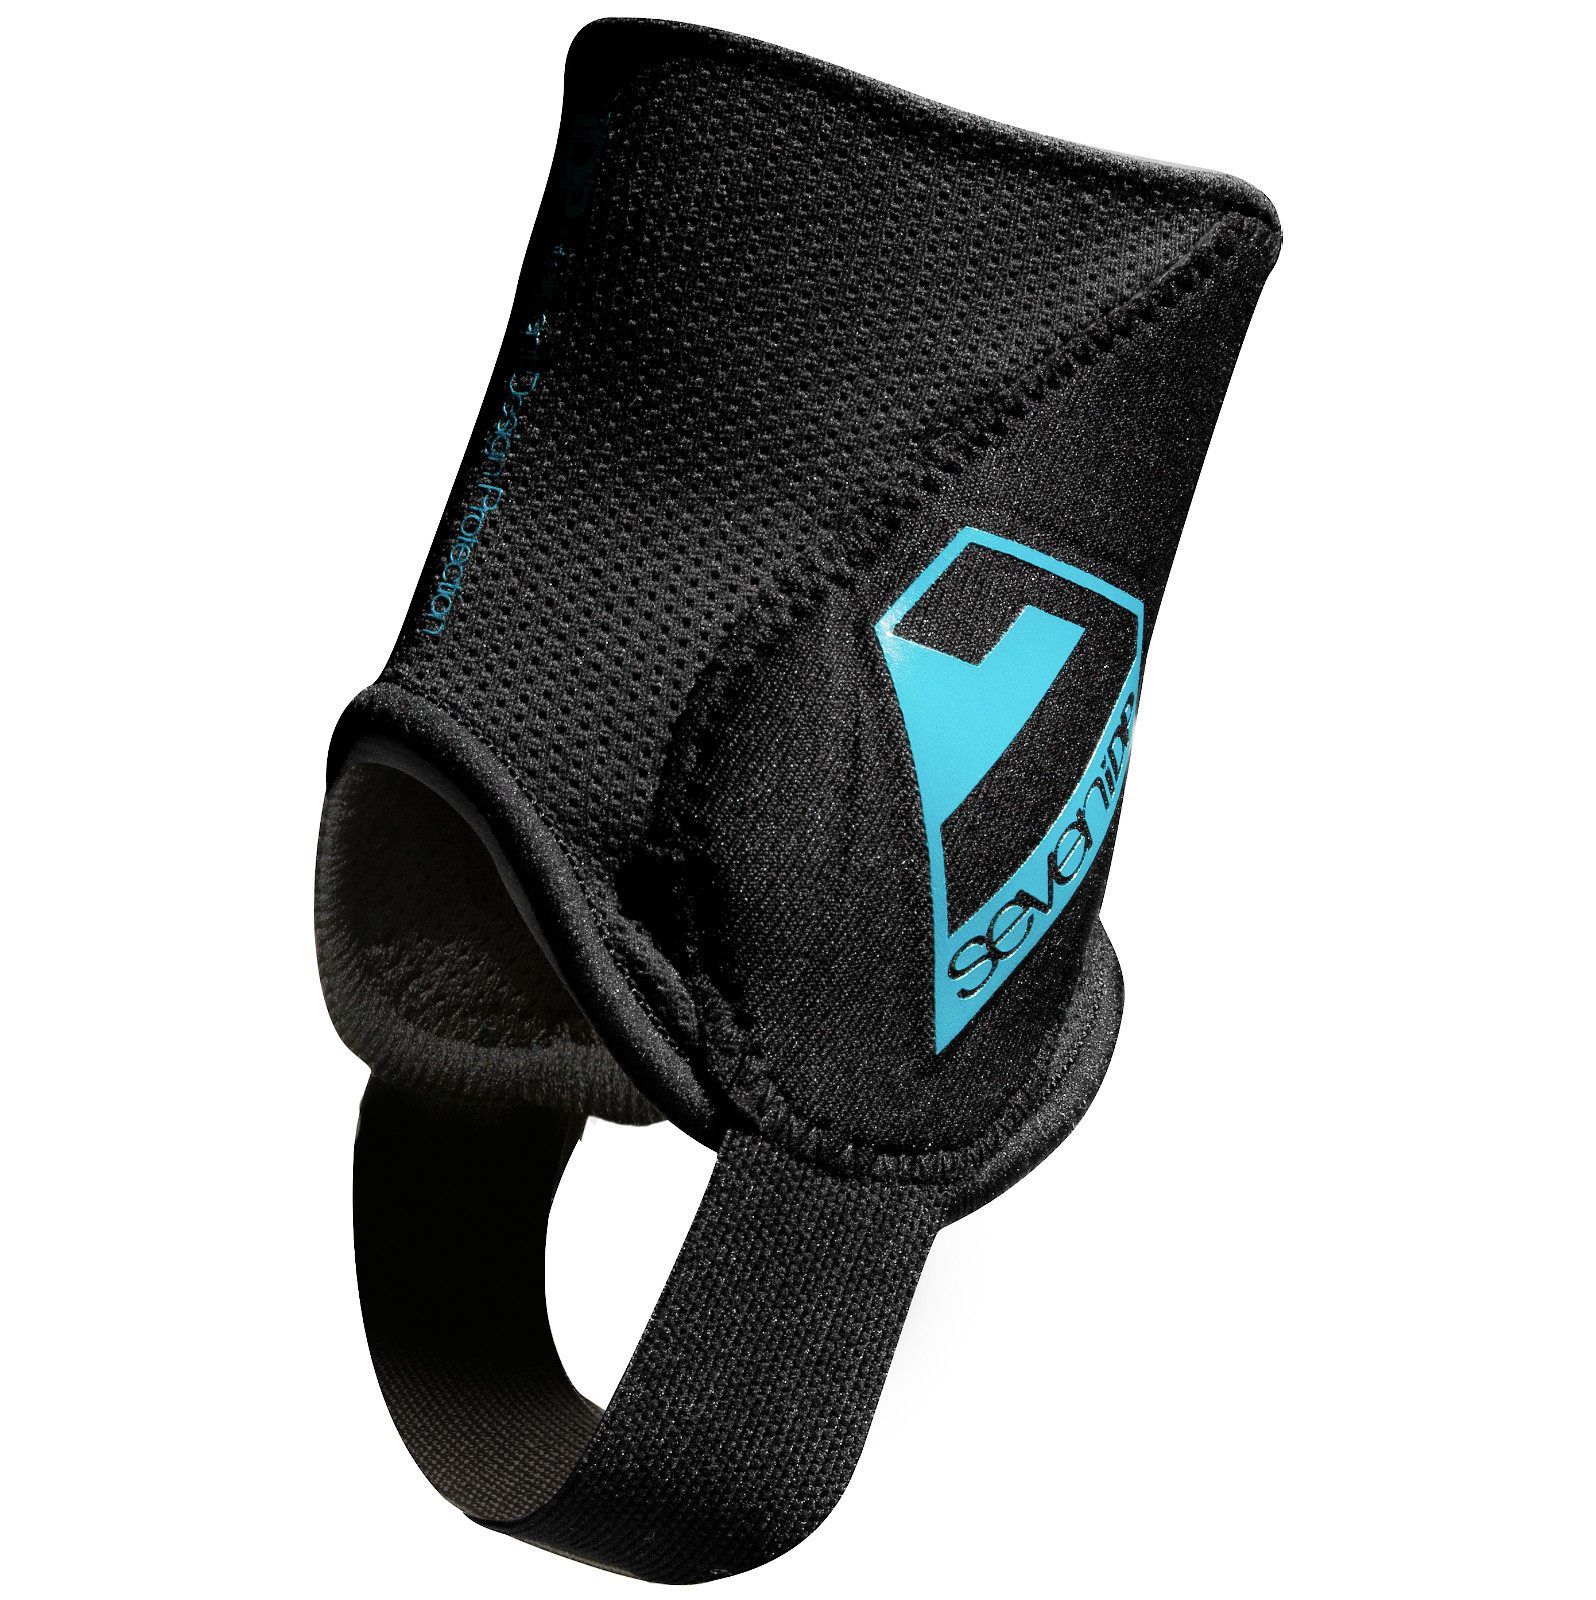 7iDP Control Ankle Protector